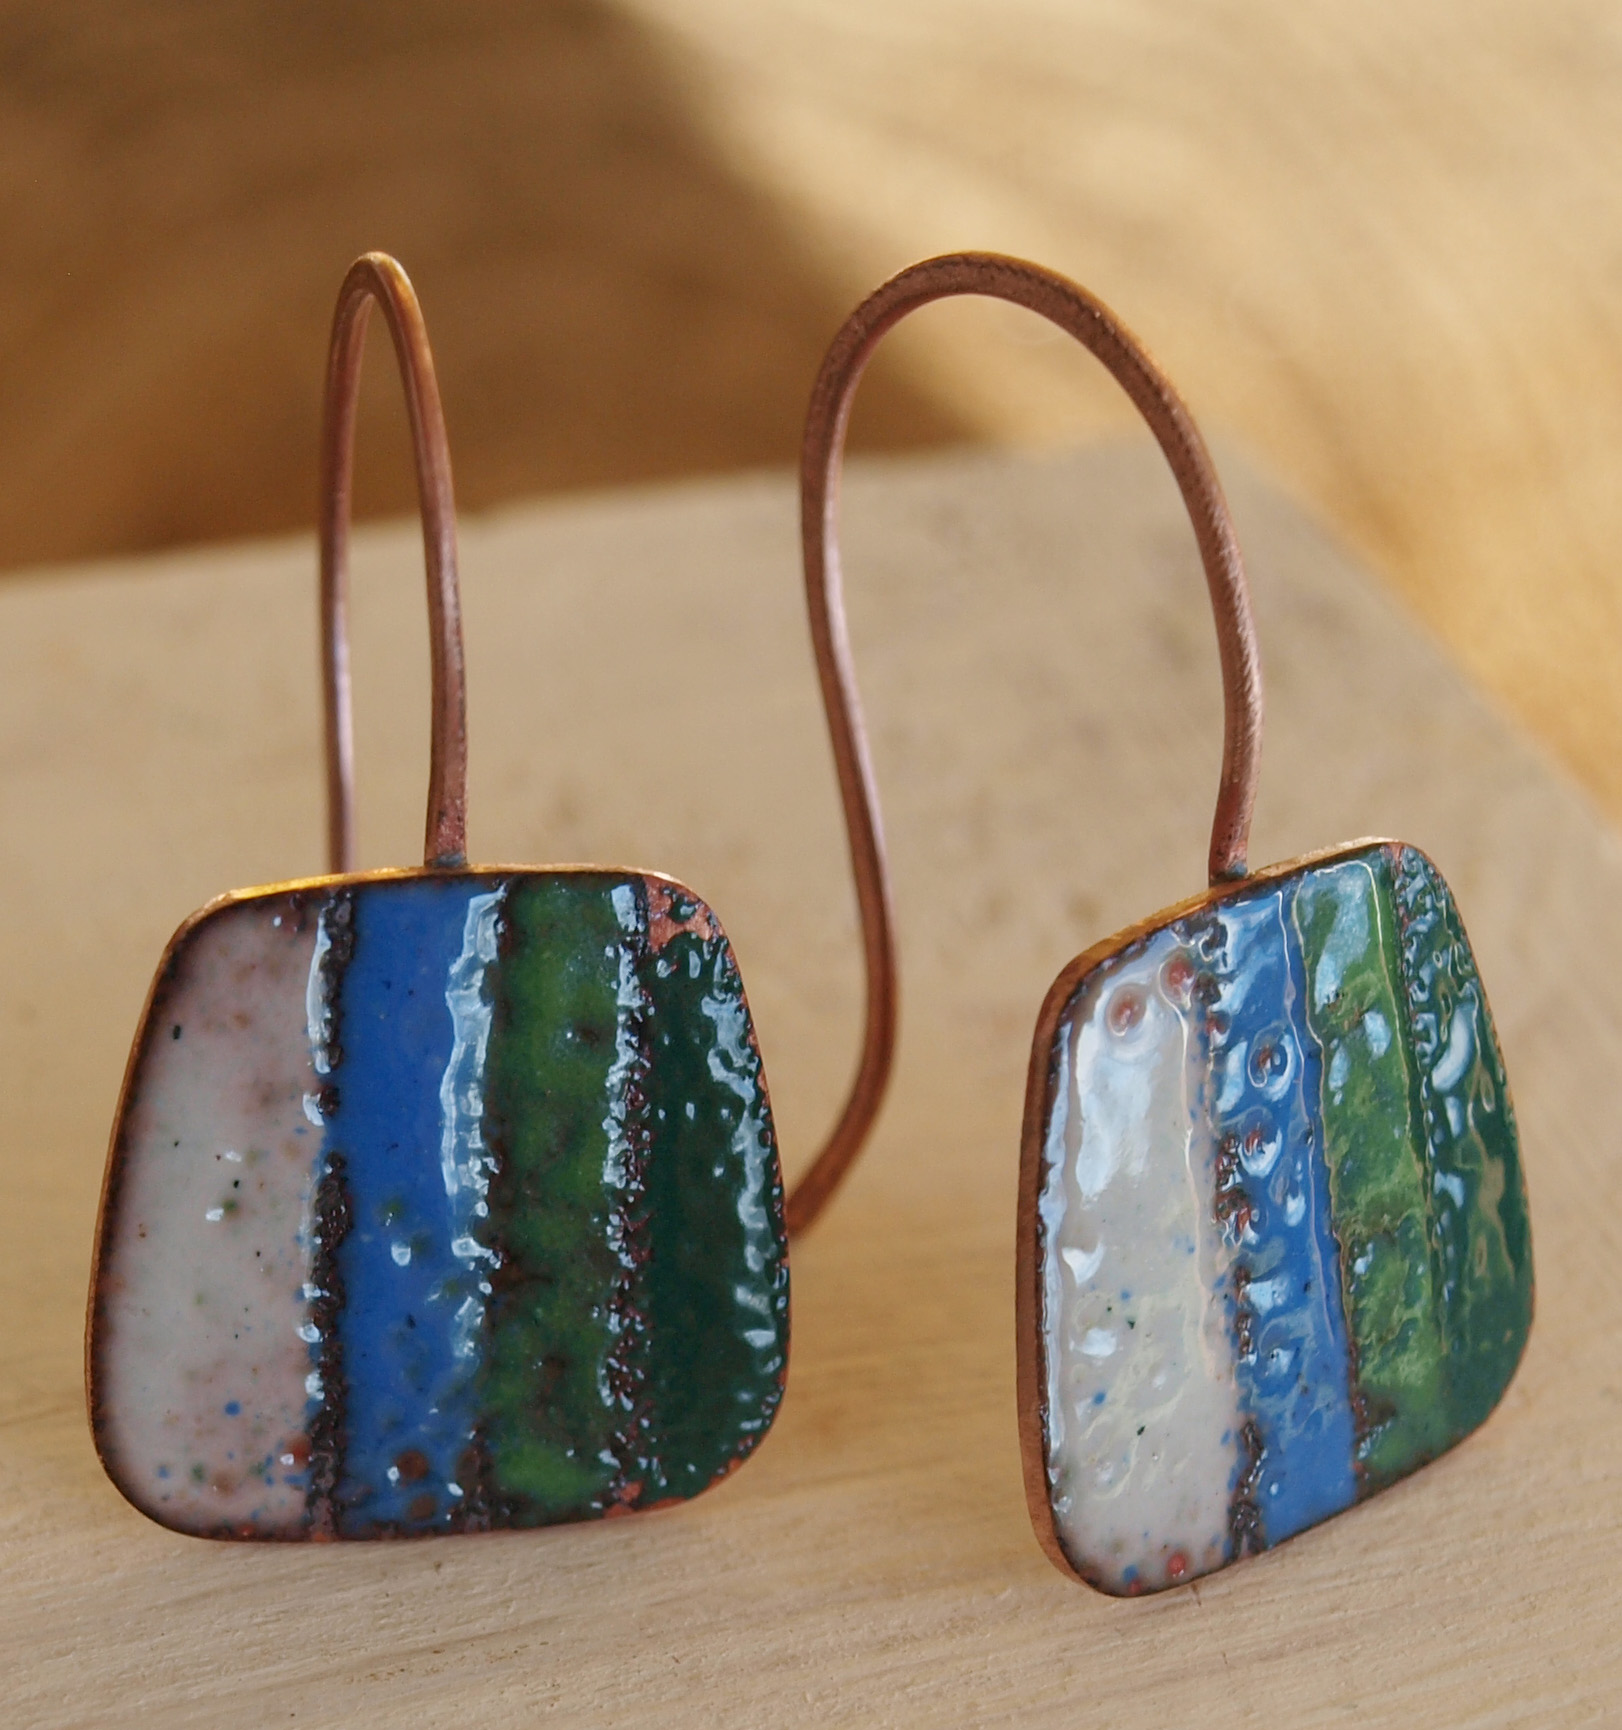 metal steede enamel product of img sculpture jewlery earrings image sgraffito kalaya